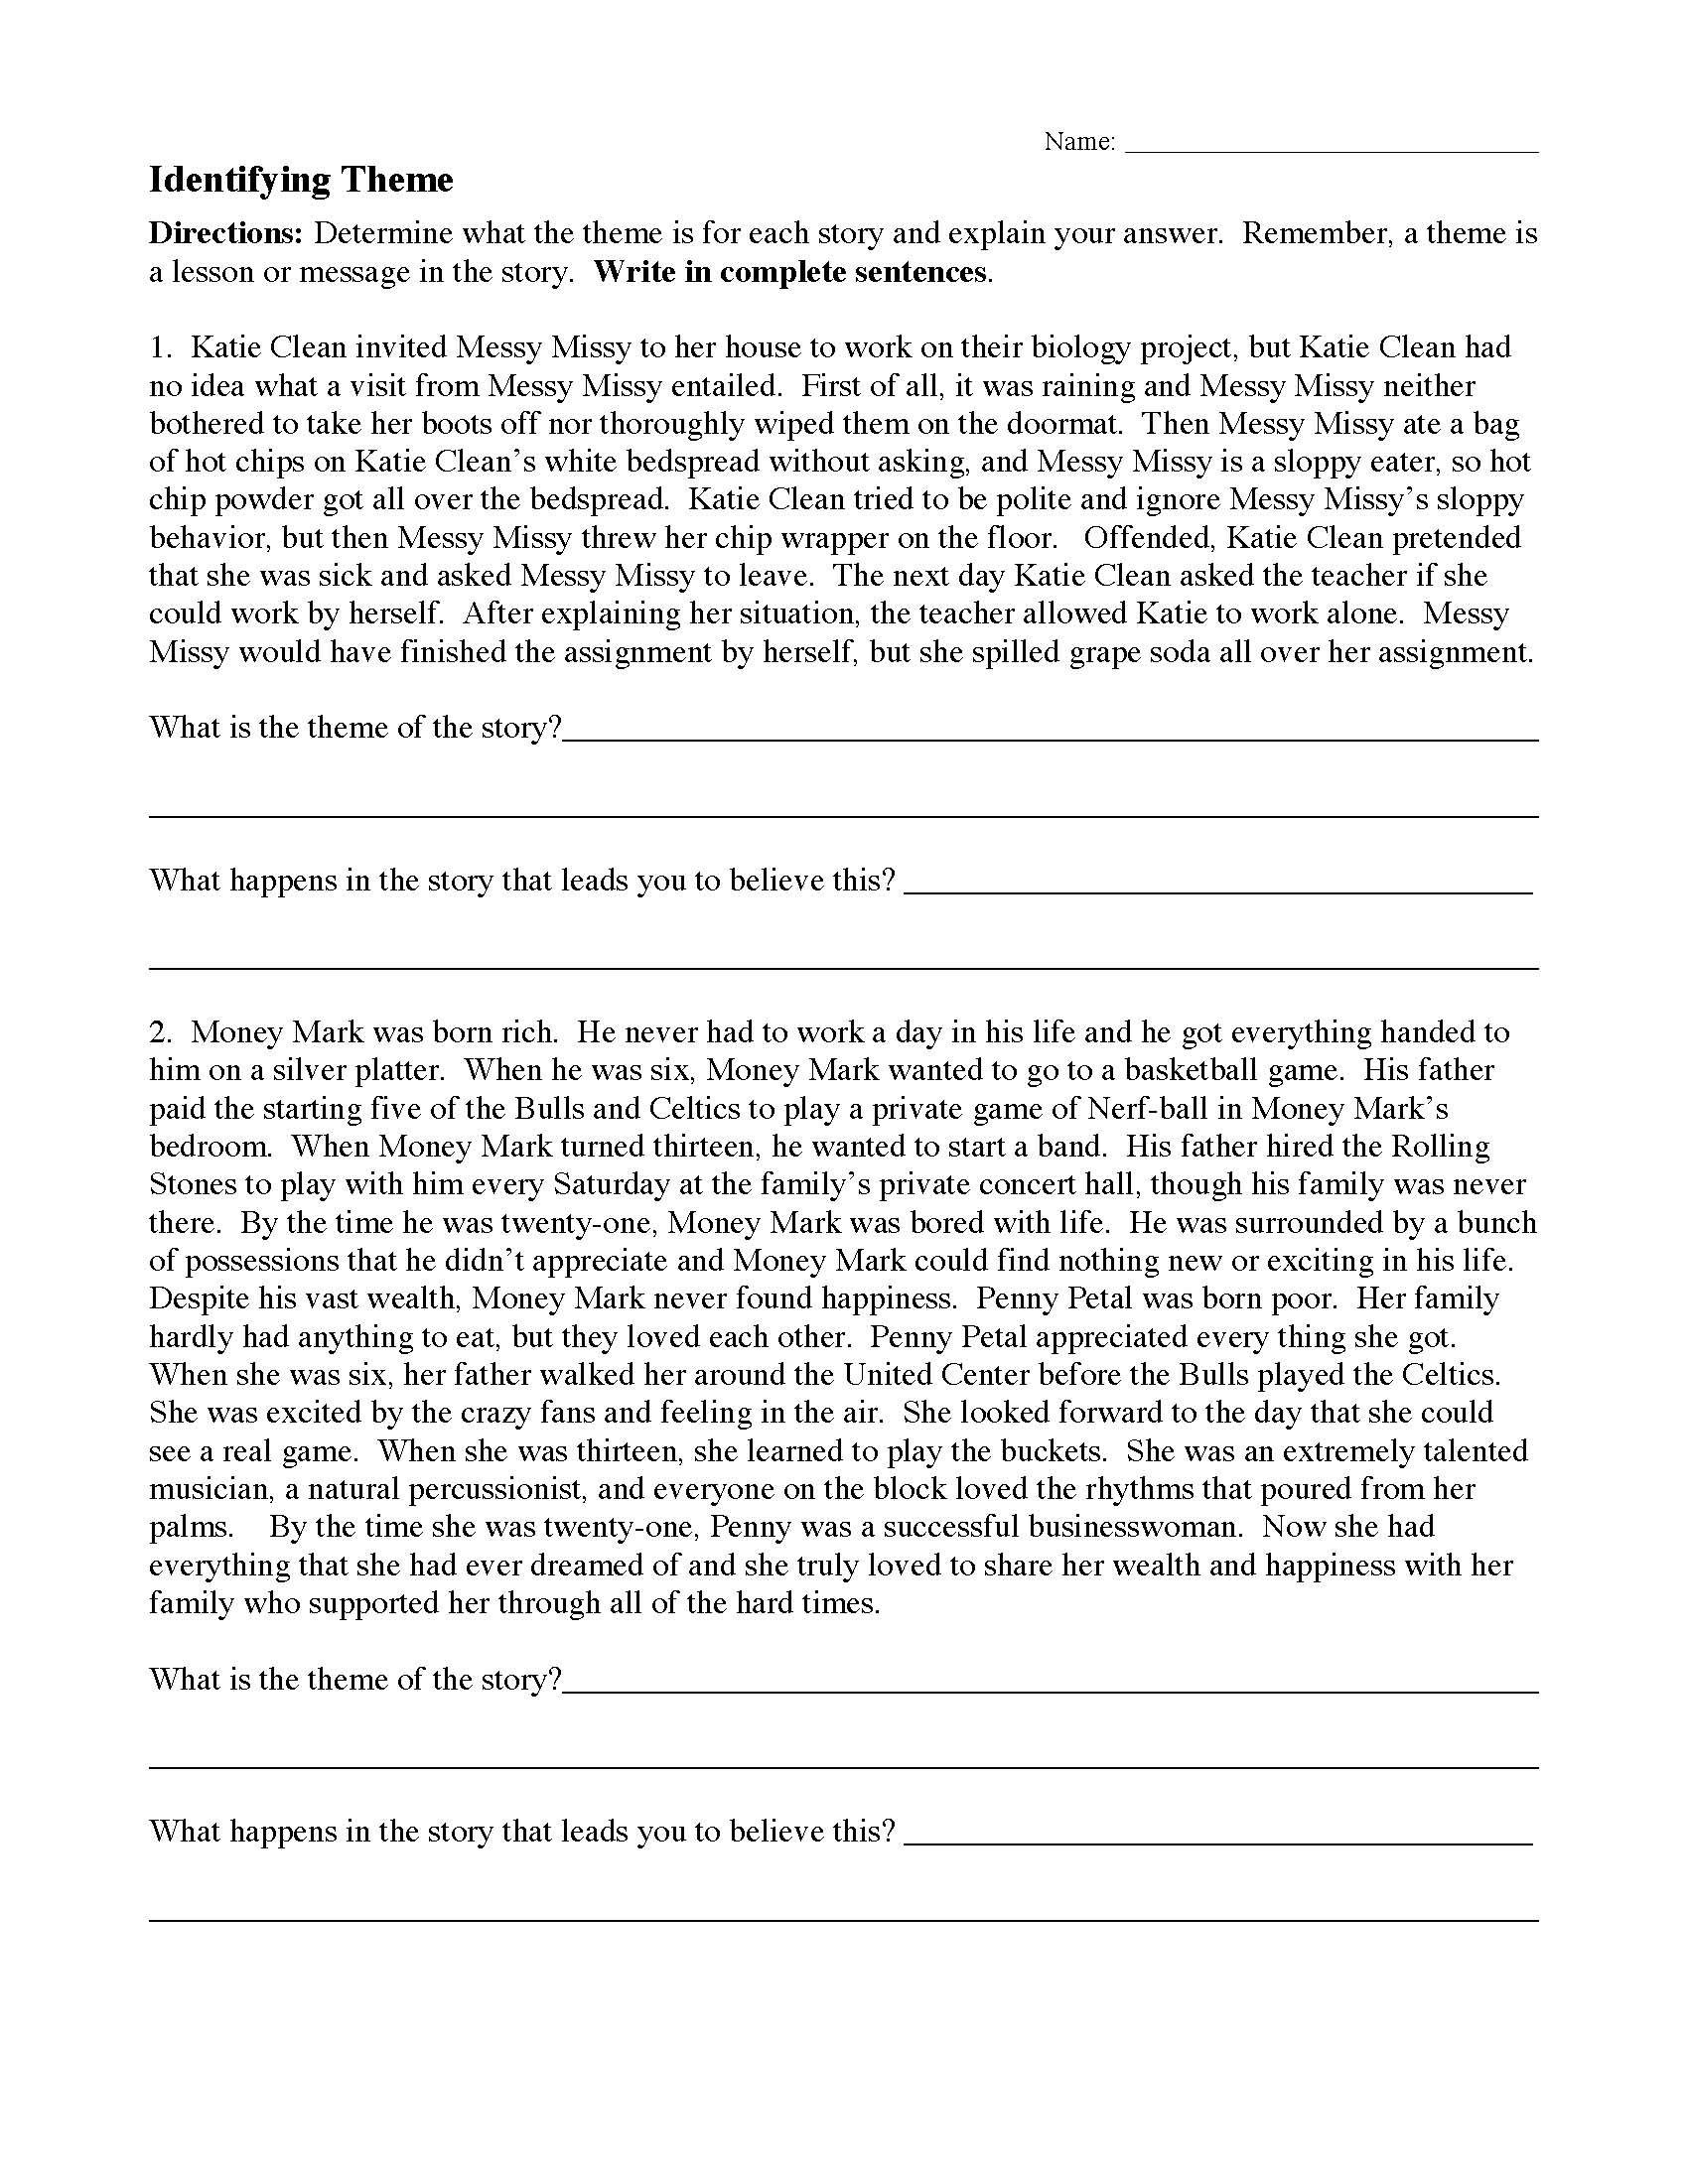 Theme Worksheet 1  Preview With Regard To Identifying Theme Worksheets